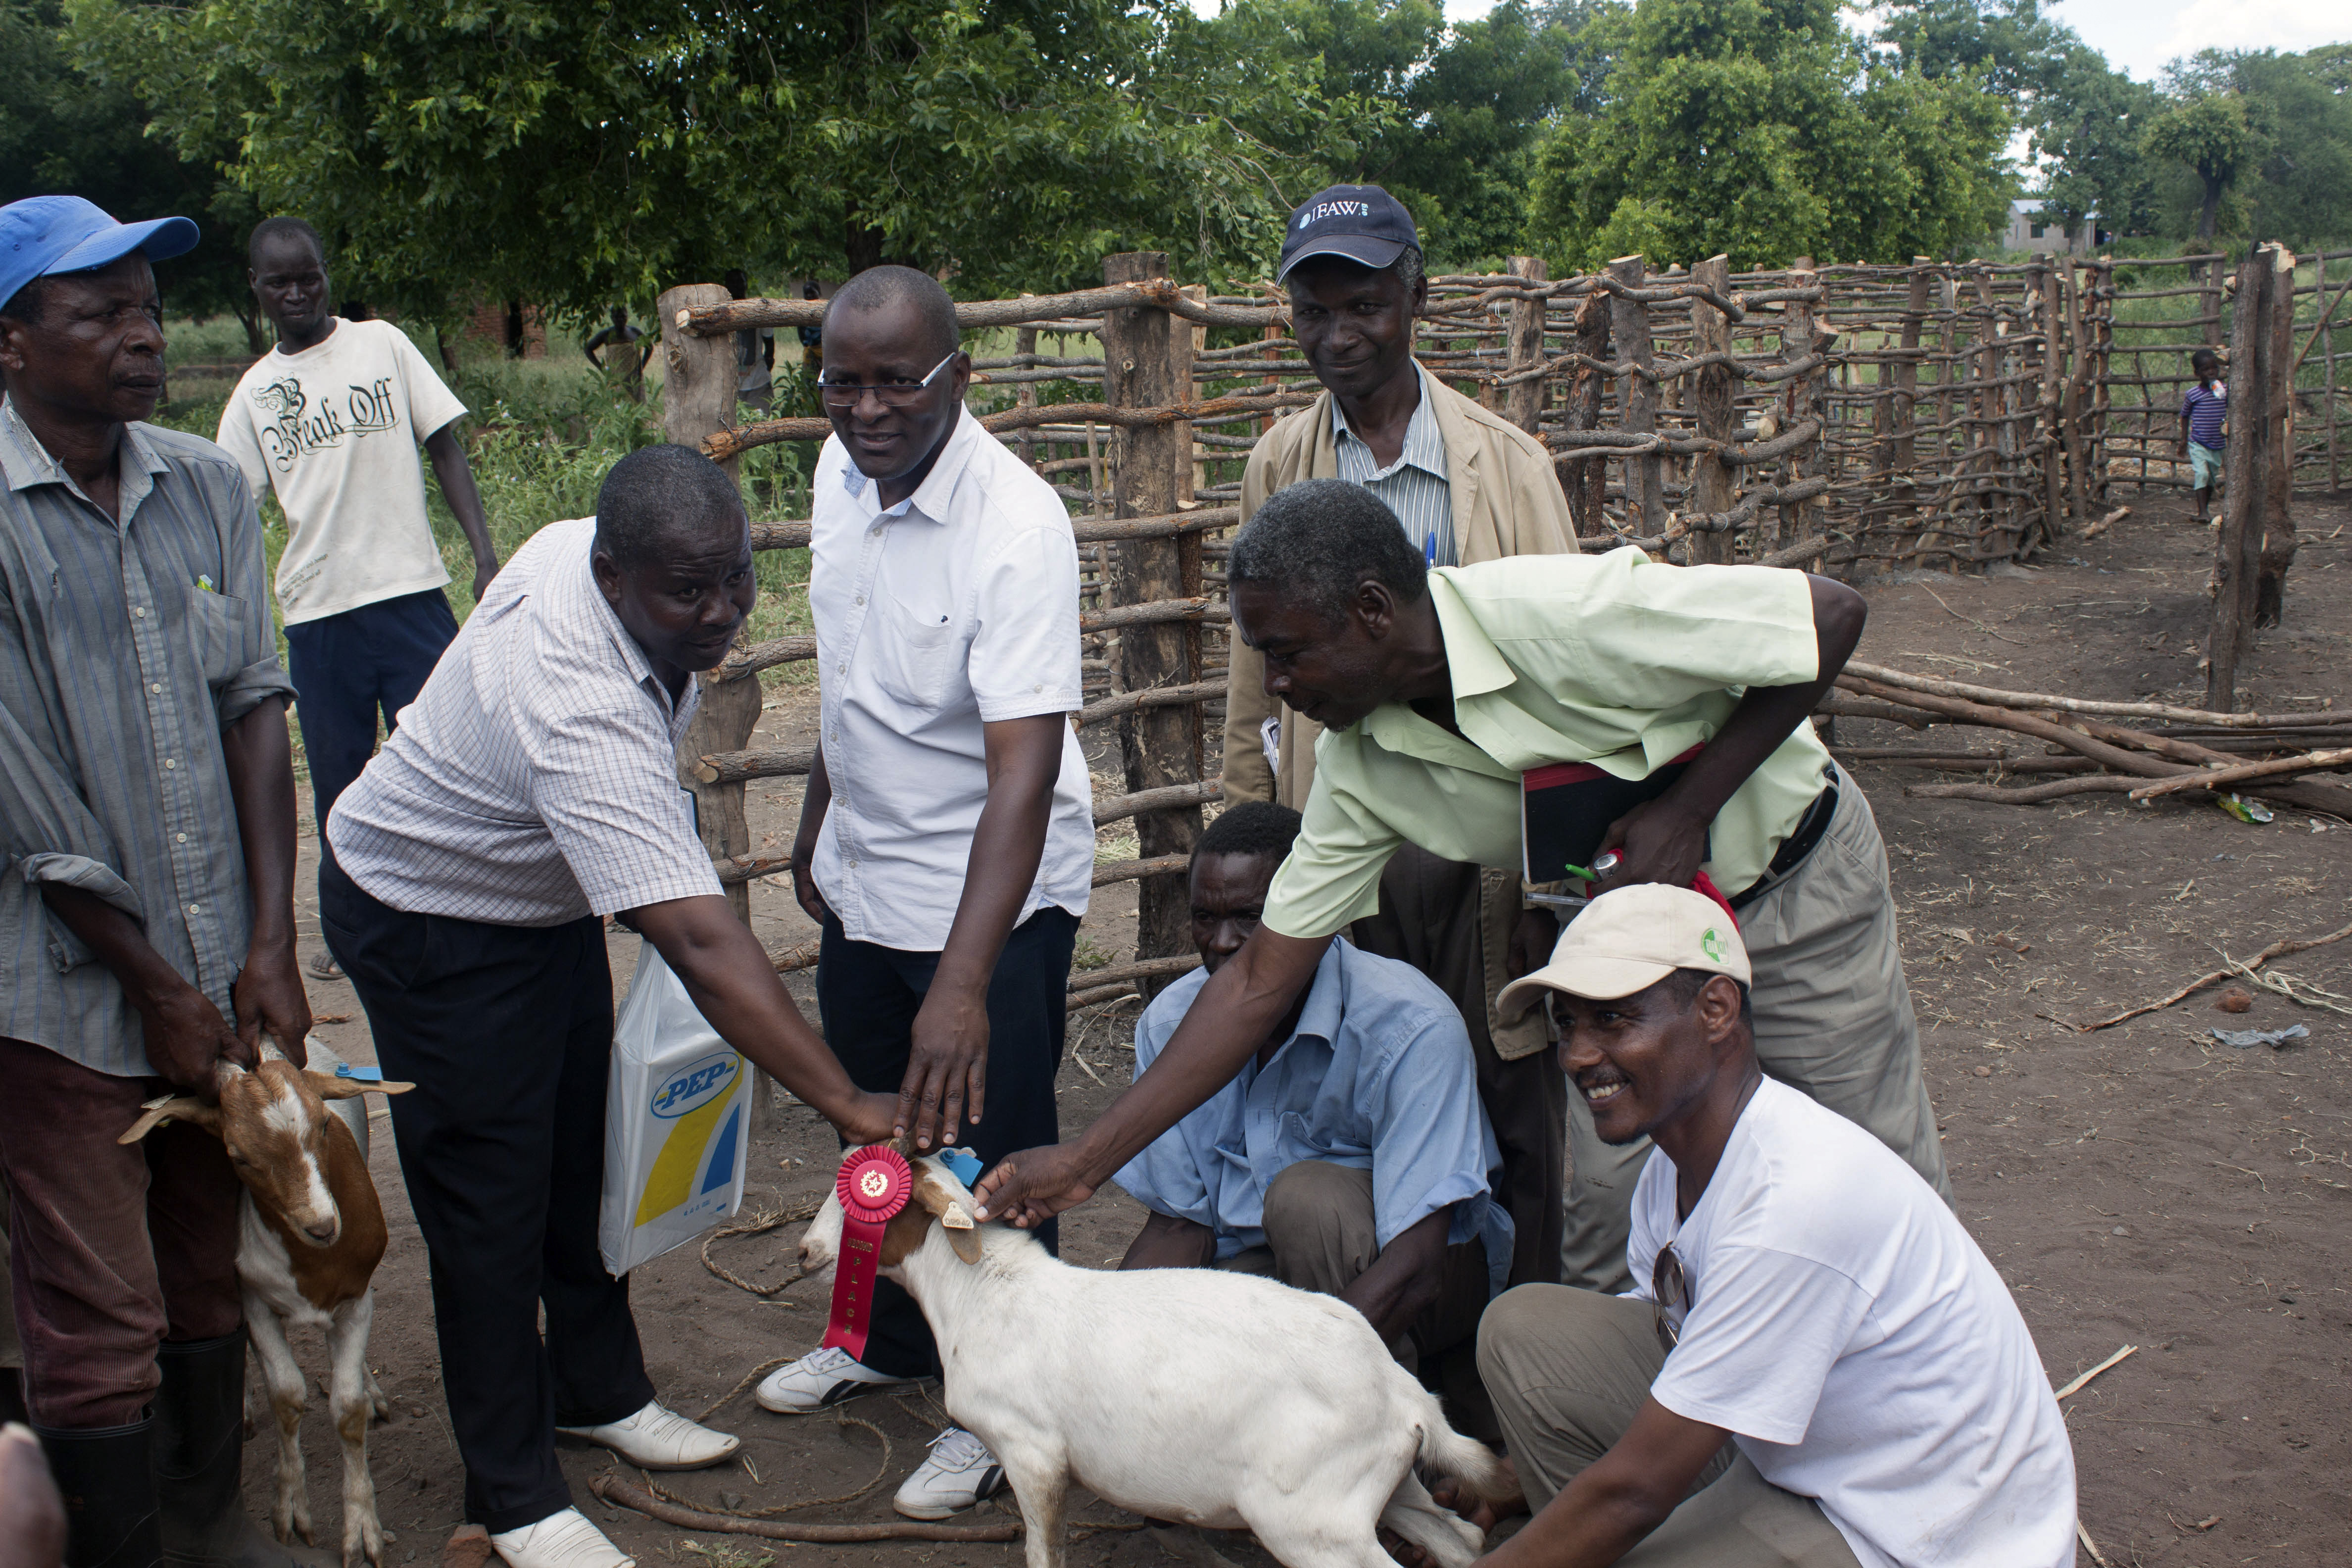 Members of the goat improvement project looking at a goat.